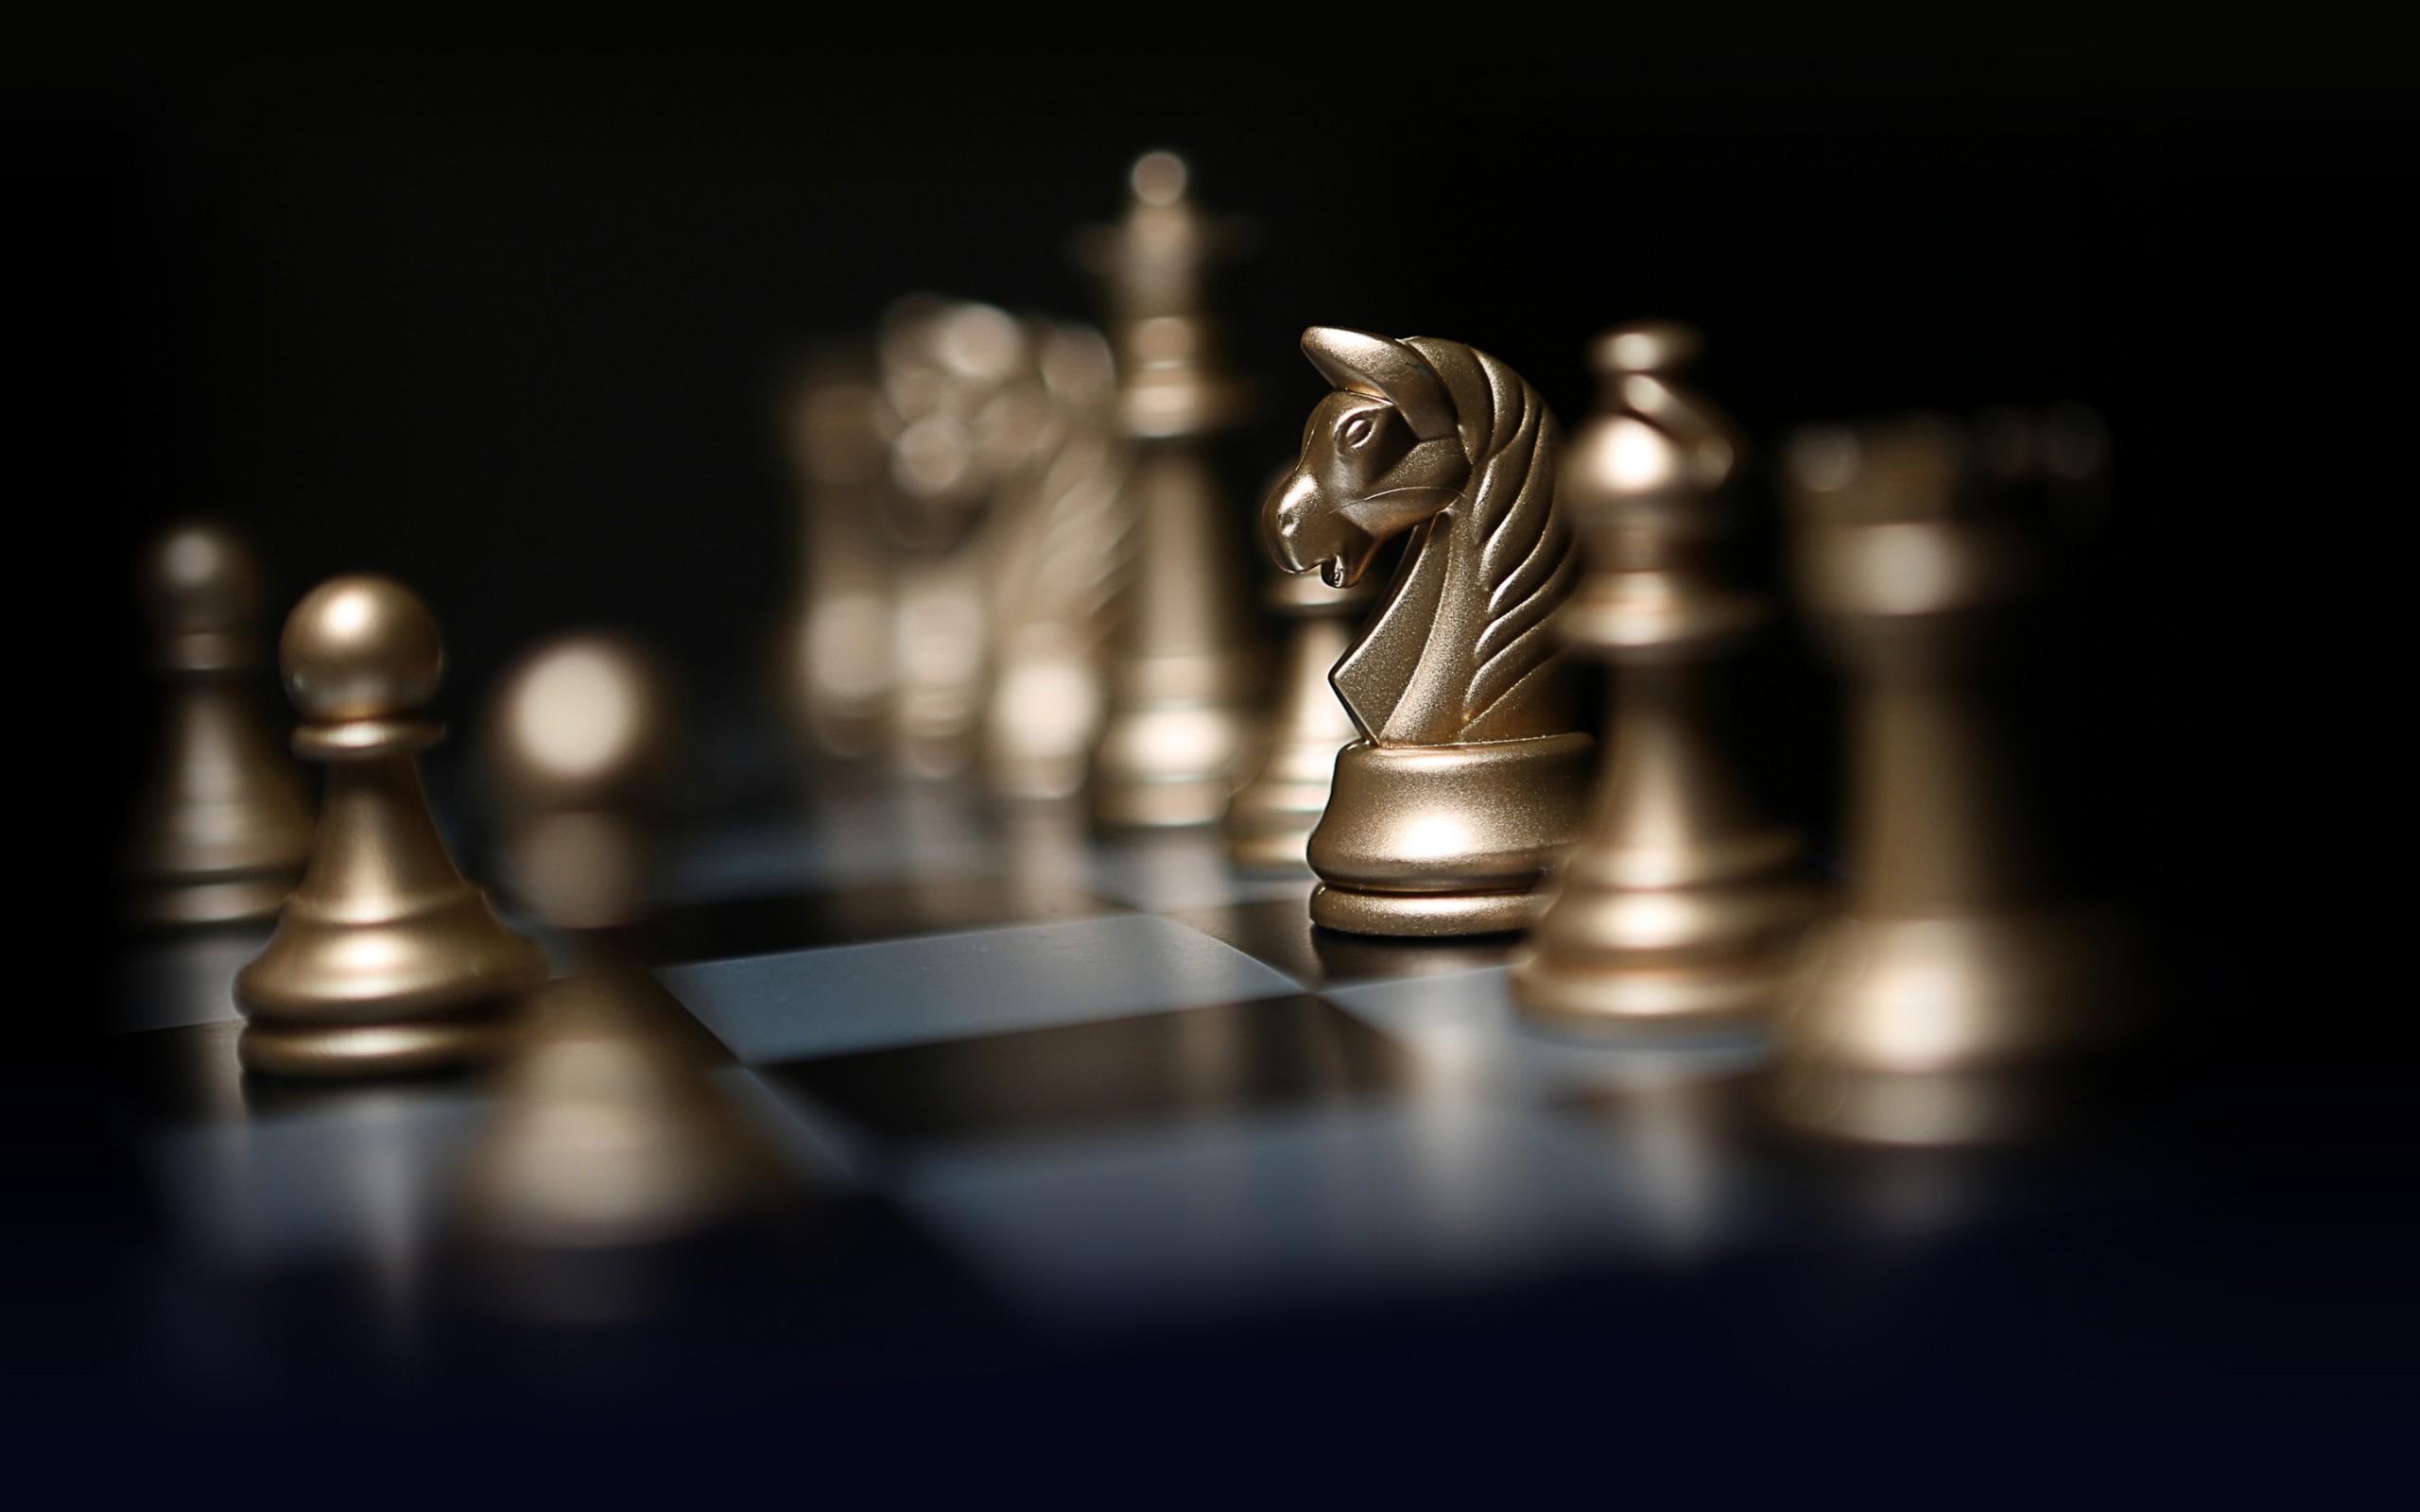 3d Fractal Wallpapers Hd Chess Hd Wallpapers Hd Wallpapers Id 22994